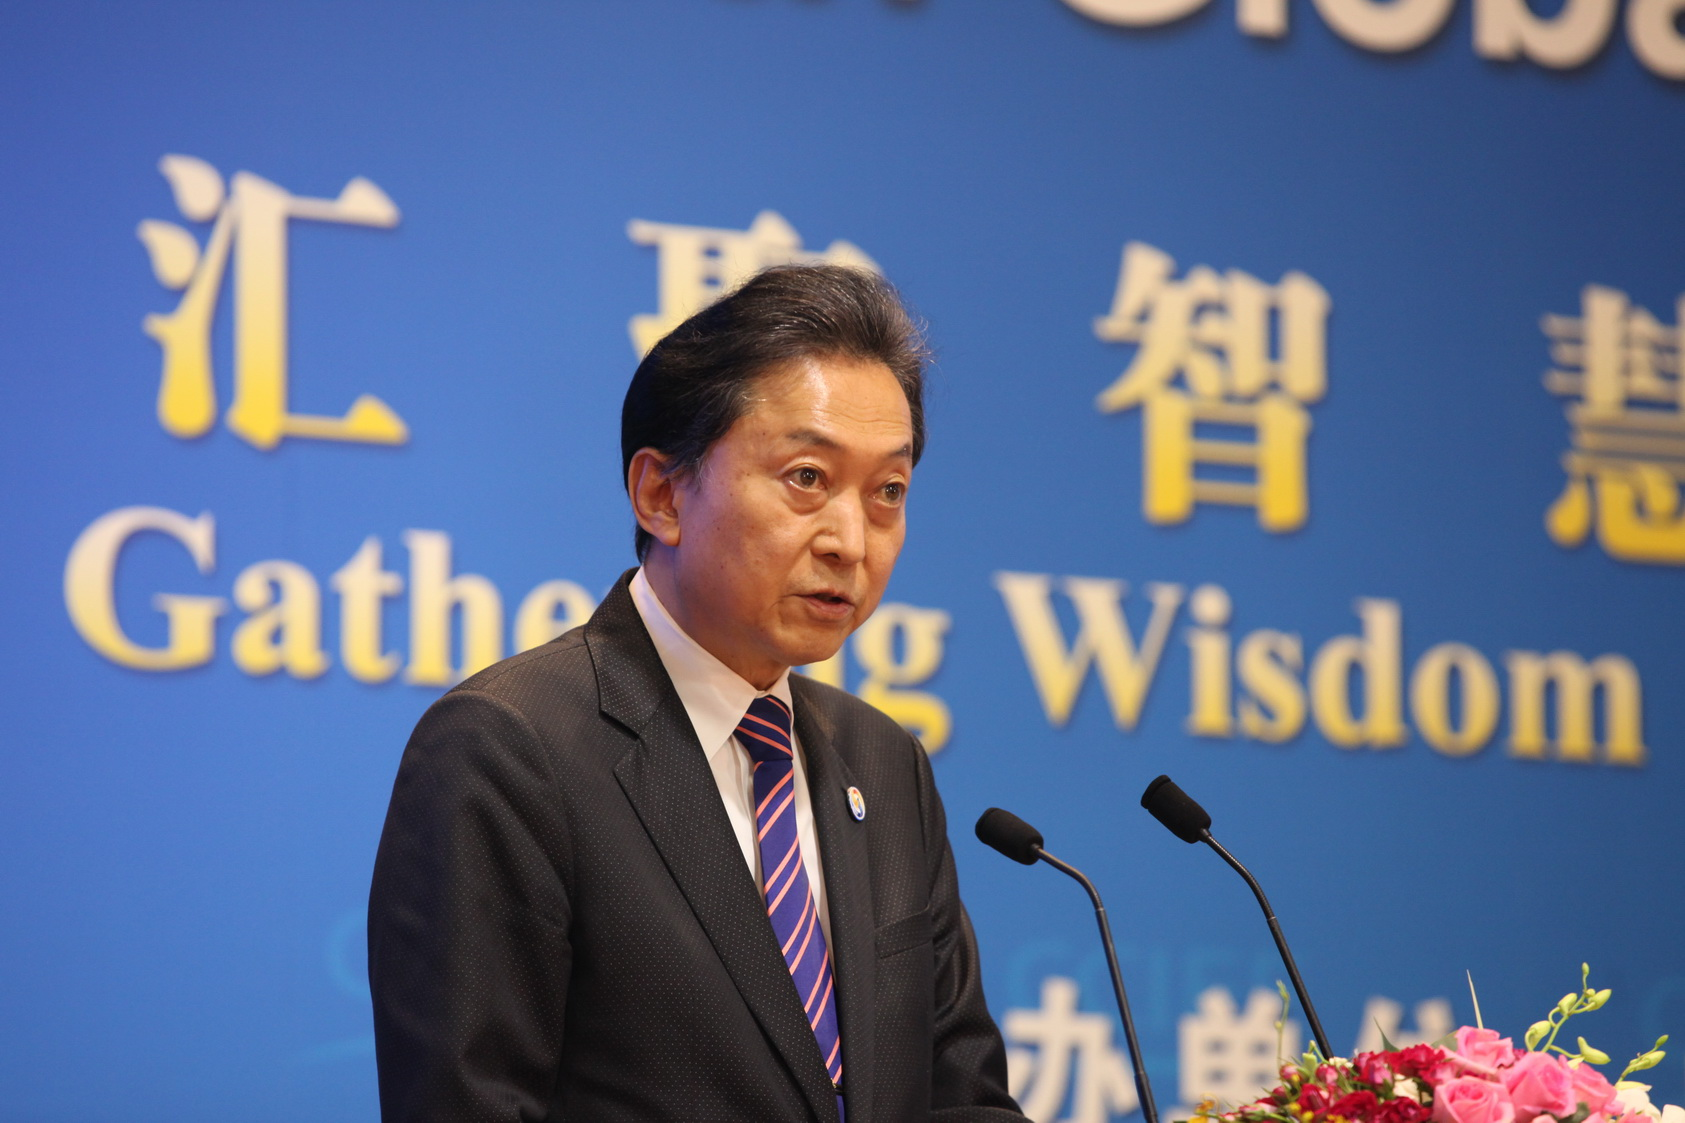 Yukio Hatoyama, Chairman of East Asian Community Institute, Former Prime Minister of Japan